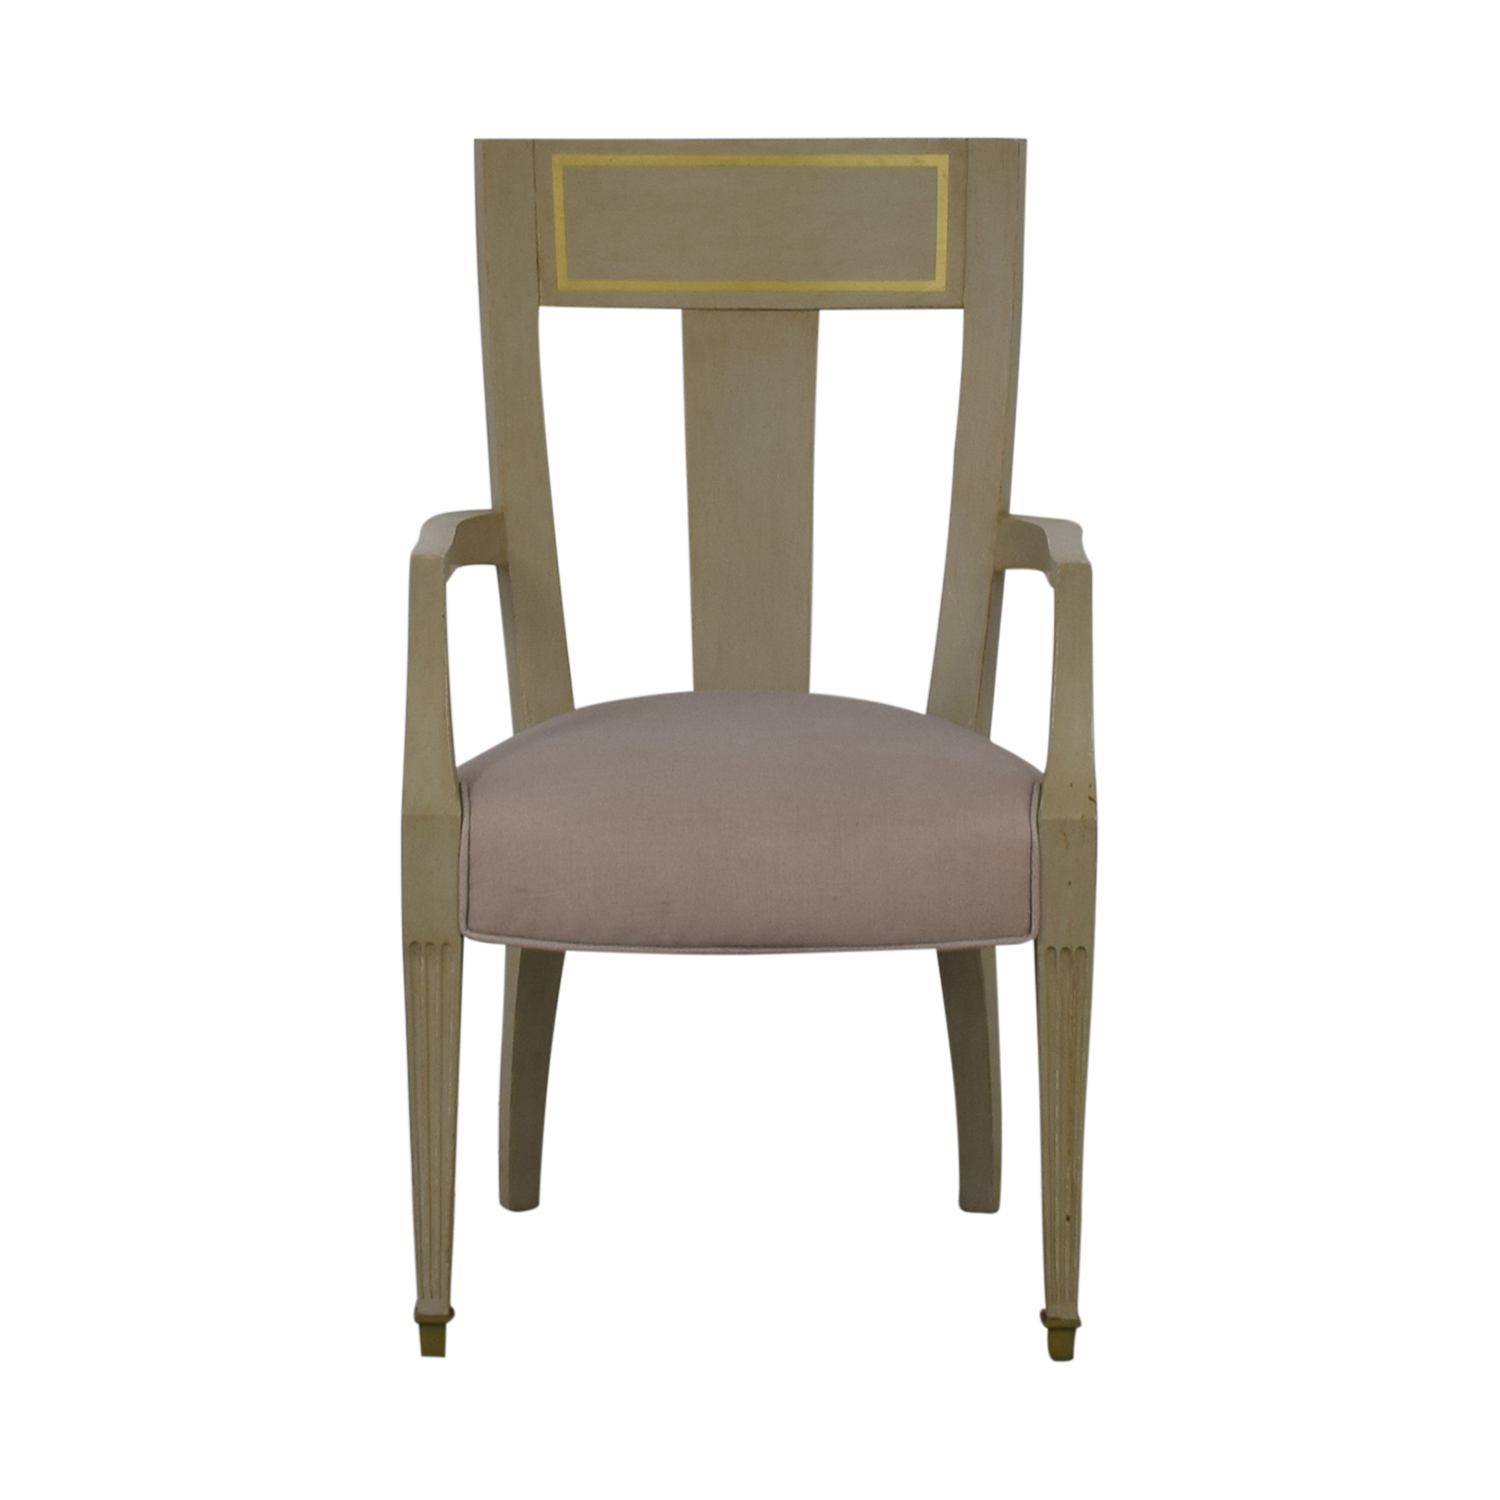 Marvelous 90 Off Gray And Gold Arm Accent Chair Chairs Gmtry Best Dining Table And Chair Ideas Images Gmtryco